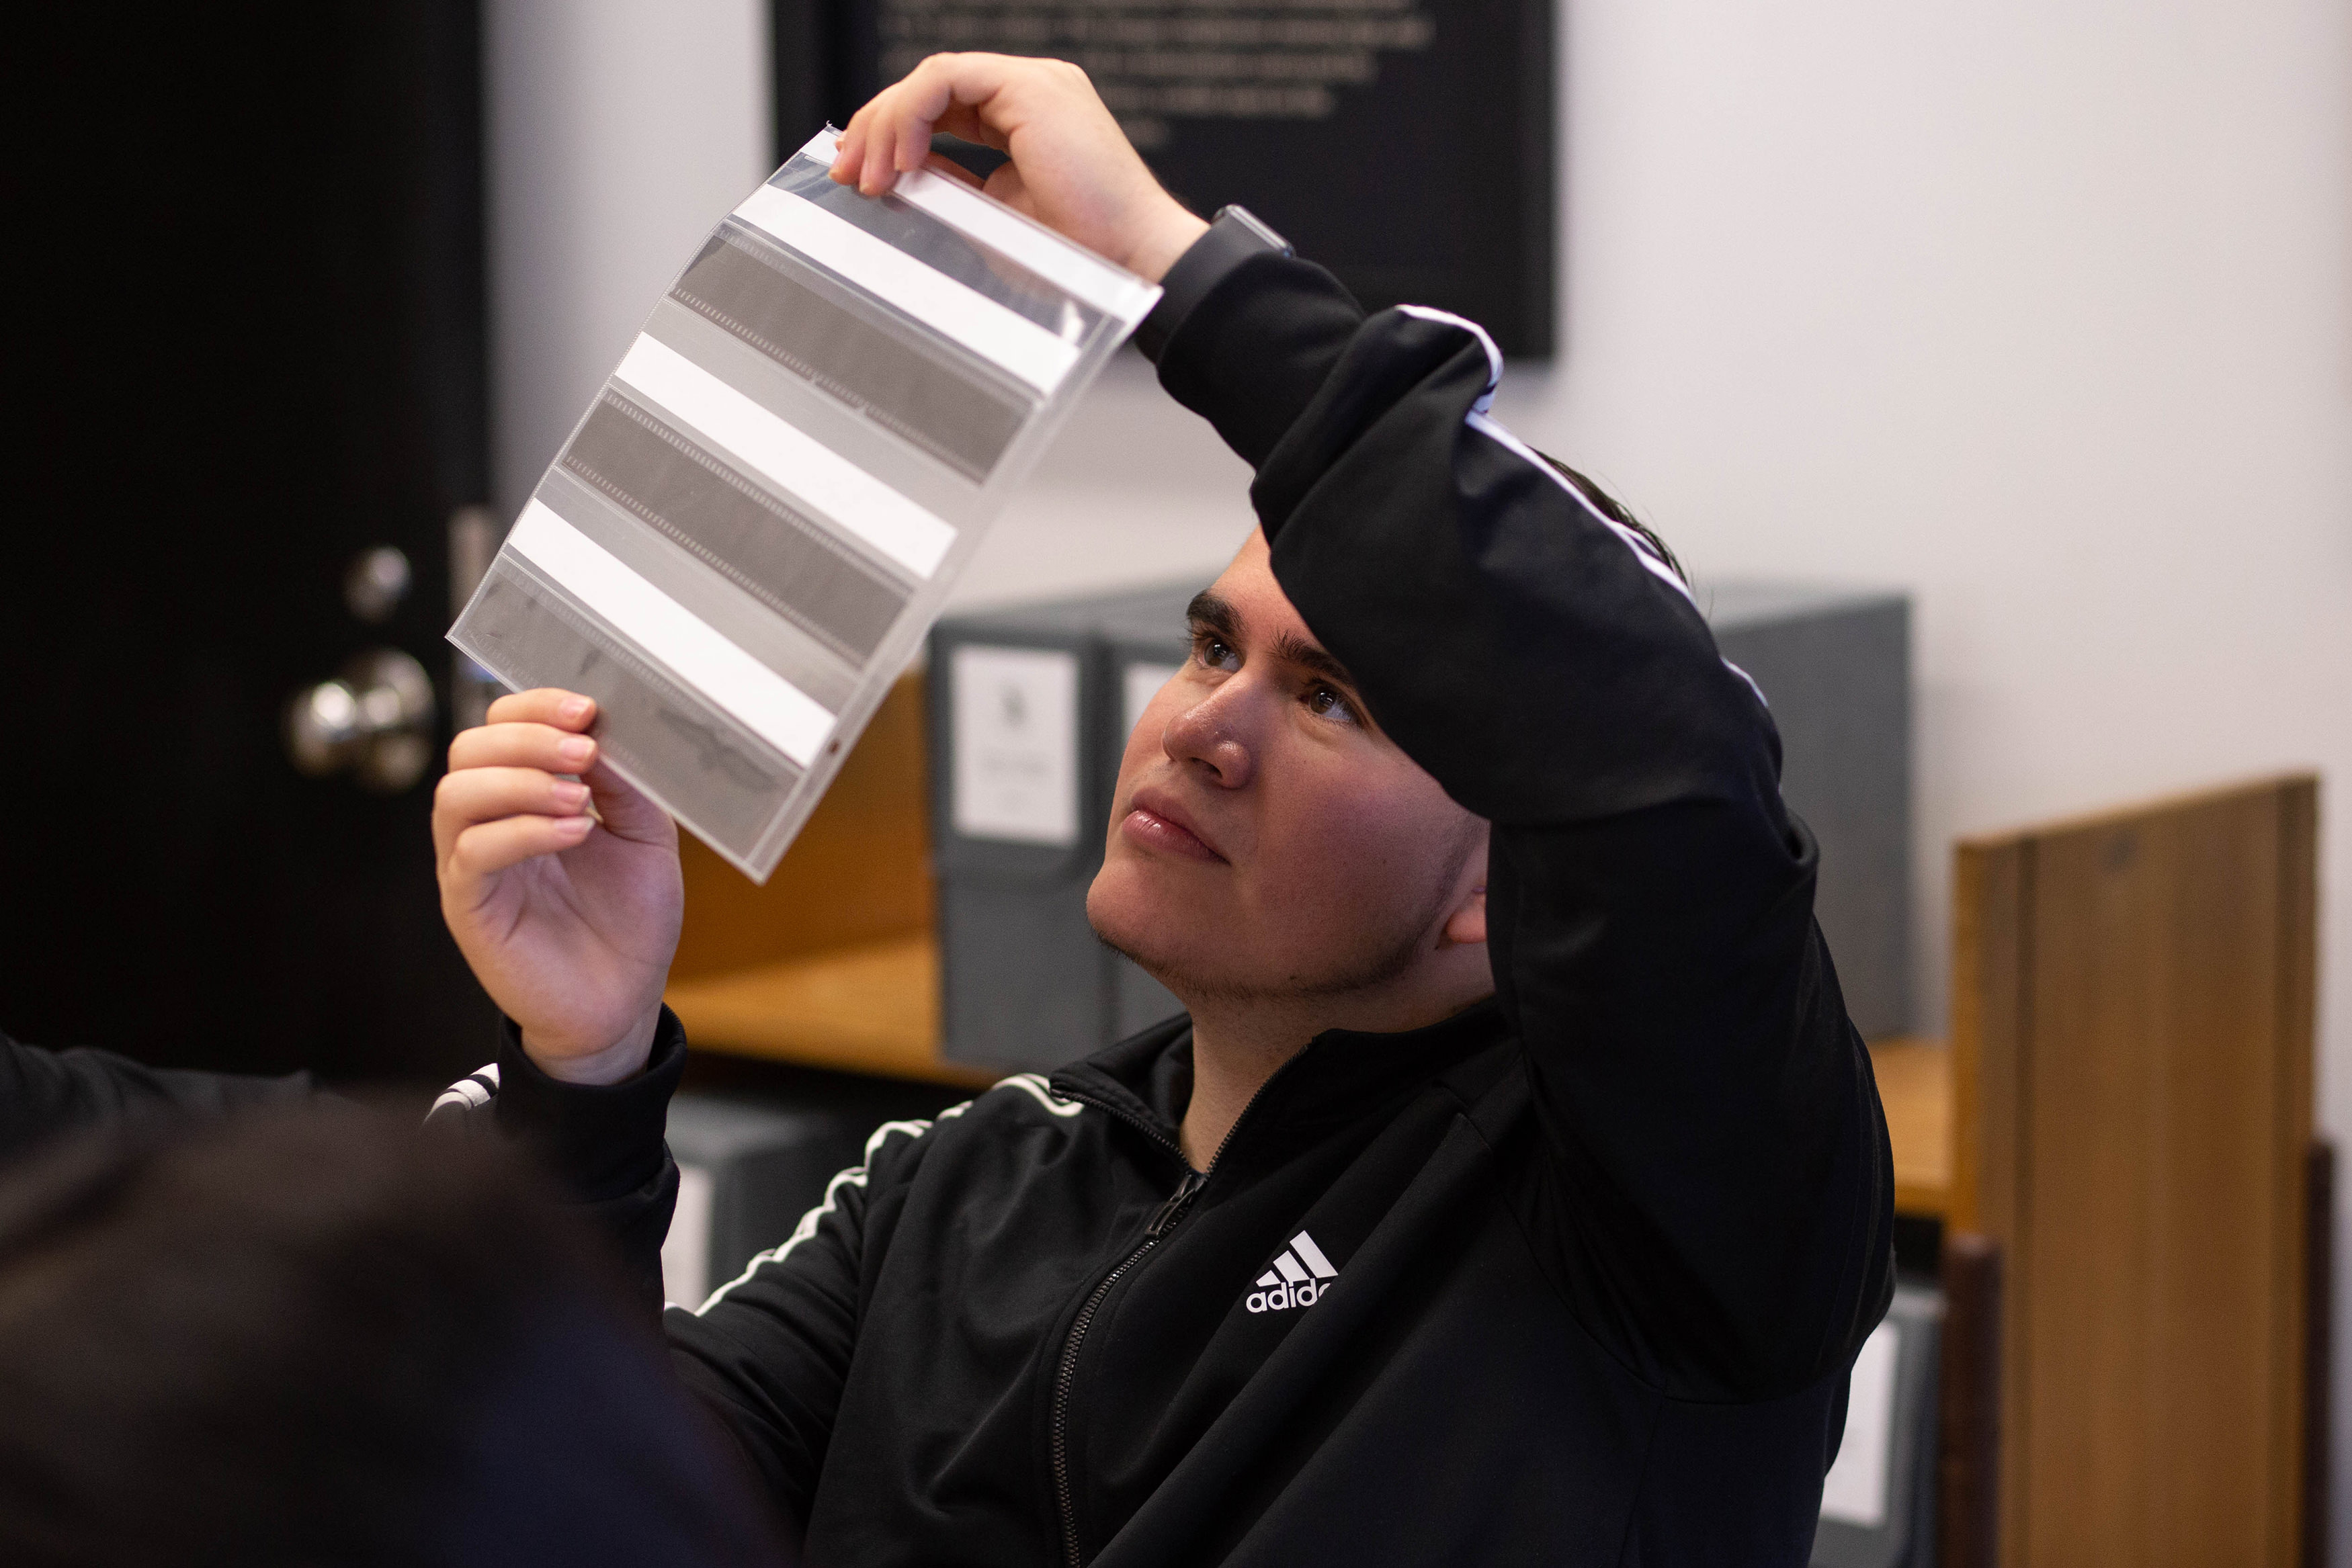 A student examines strips of 35mm film